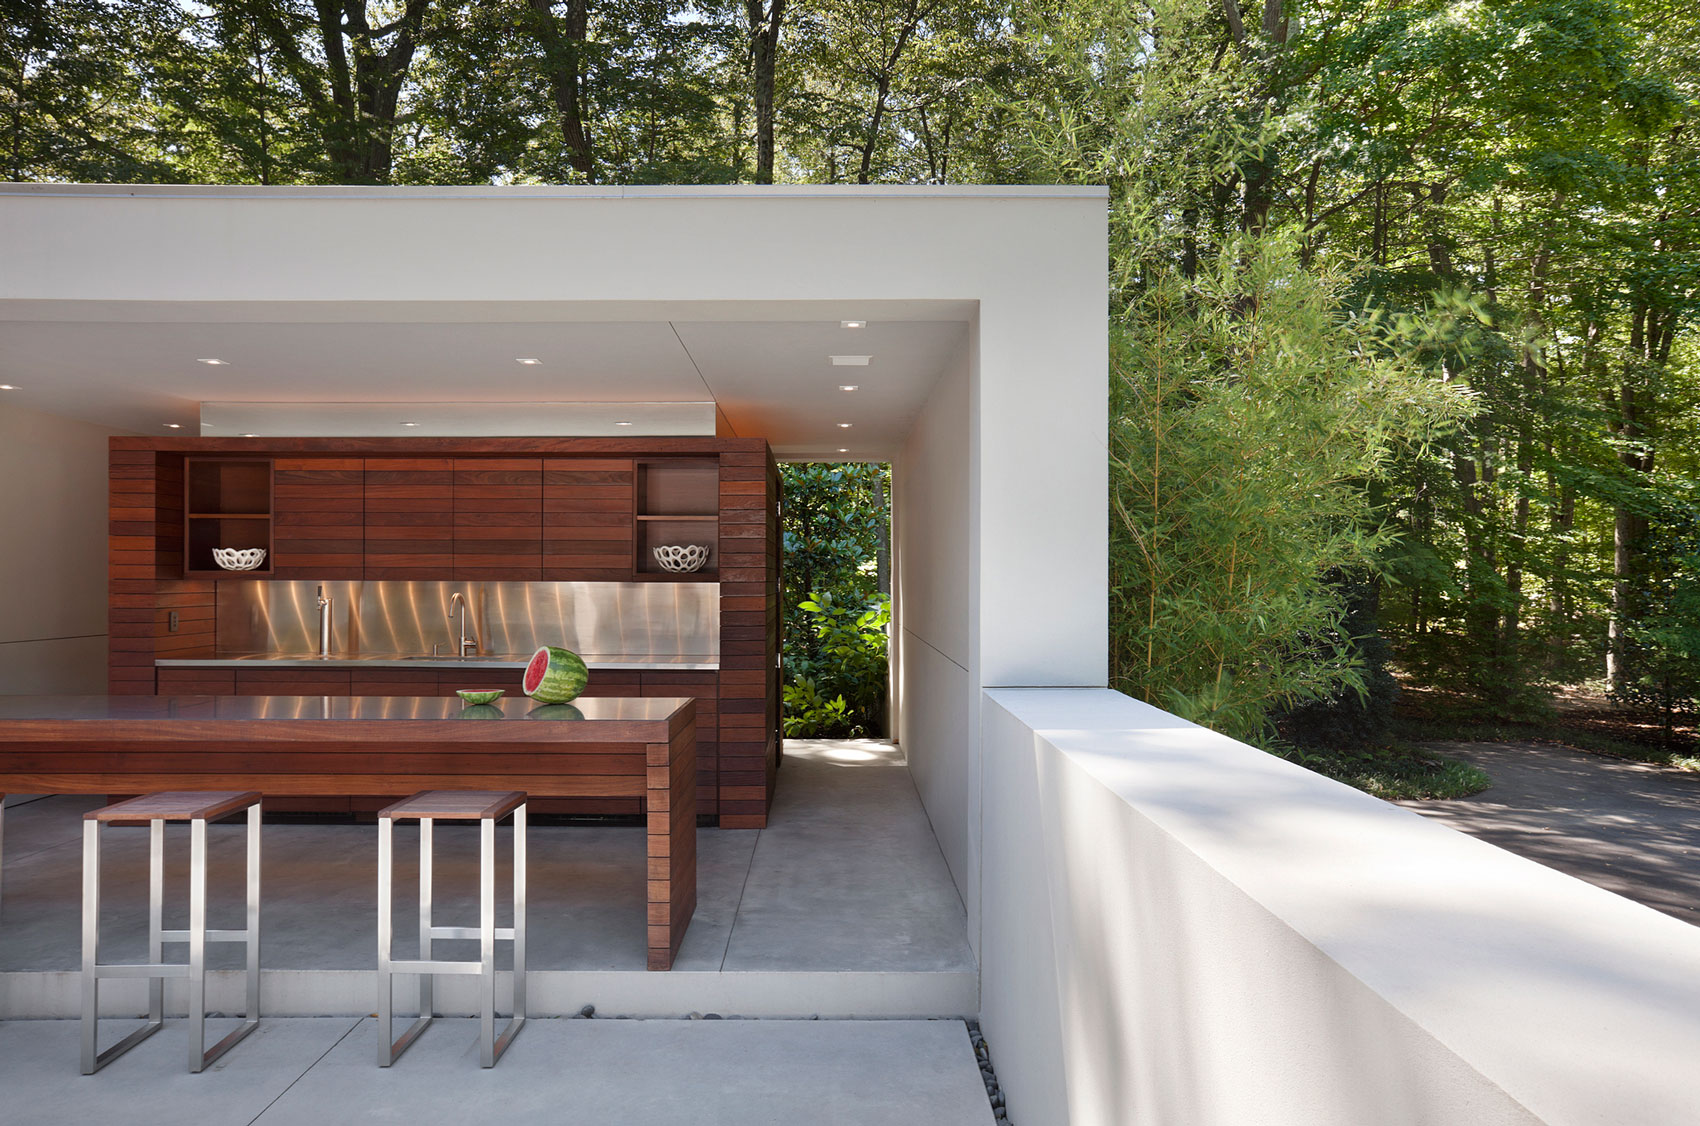 entrancing-cool-cabinets-along-with-stainless-steel-backsplash-on-modern-outdoor-kitchen-in-addition-to-flat-roof-along-with-square-stool-pads